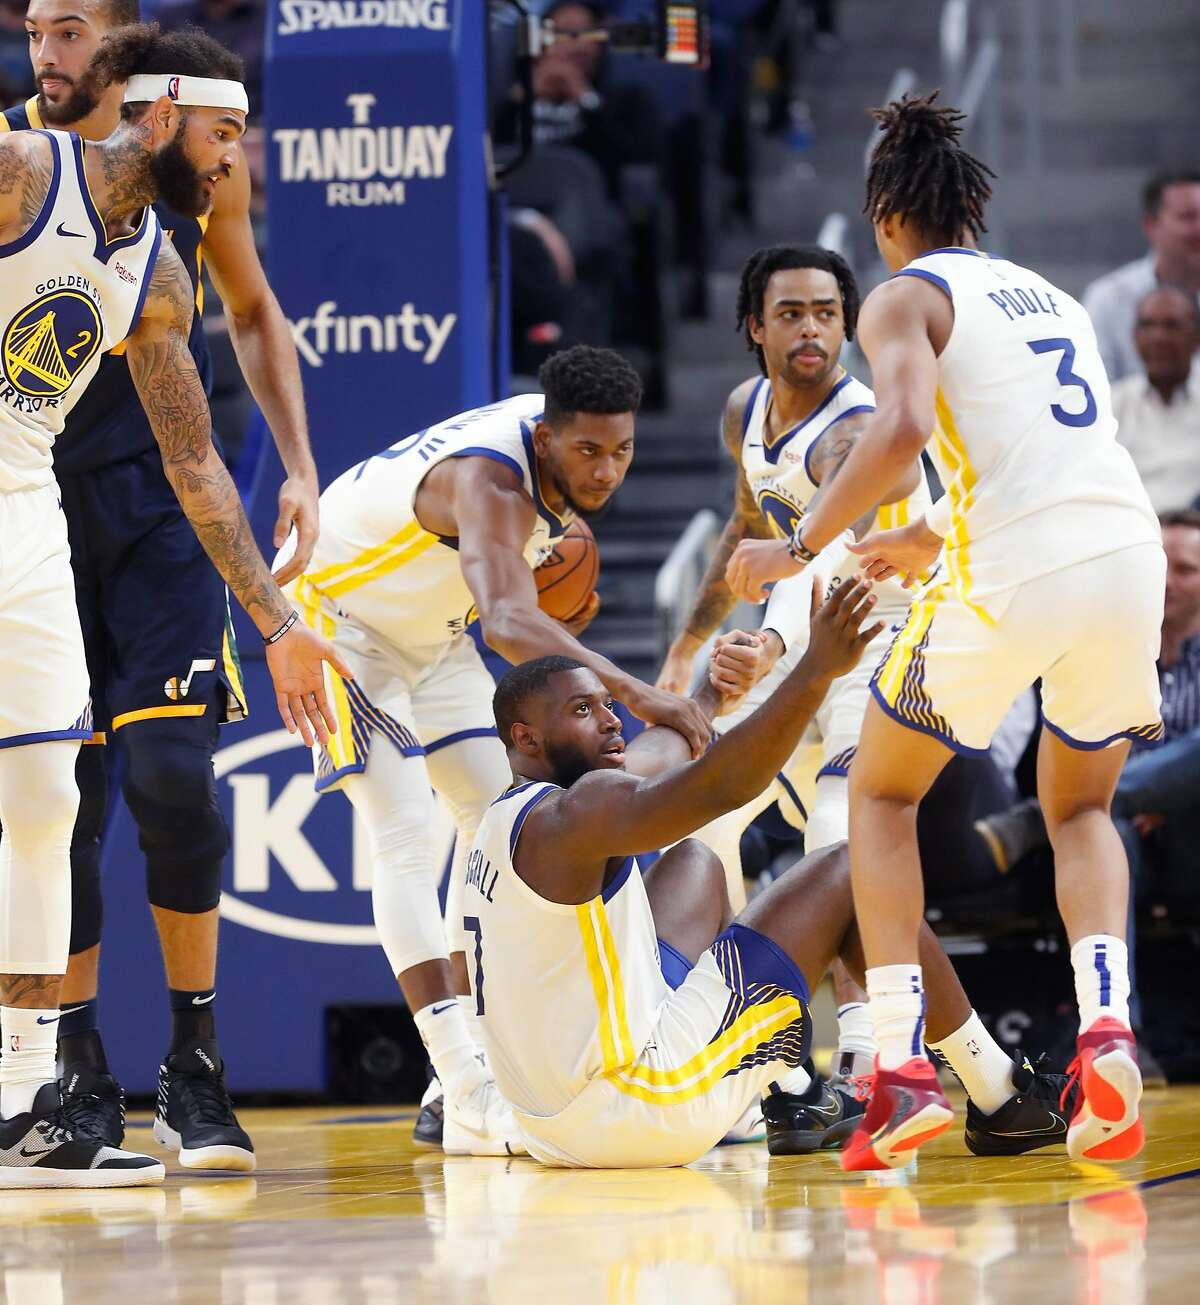 Golden State Warriors' Eric Paschall, Glenn Robinson III, D'Angelo Russell, Jordan Poole and Willie Cauley-Stein during Warriors' 122-108 loss to Utah Jazz in NBA game at Chase Center in San Francisco, Calif., on Monday, November 11, 2019.